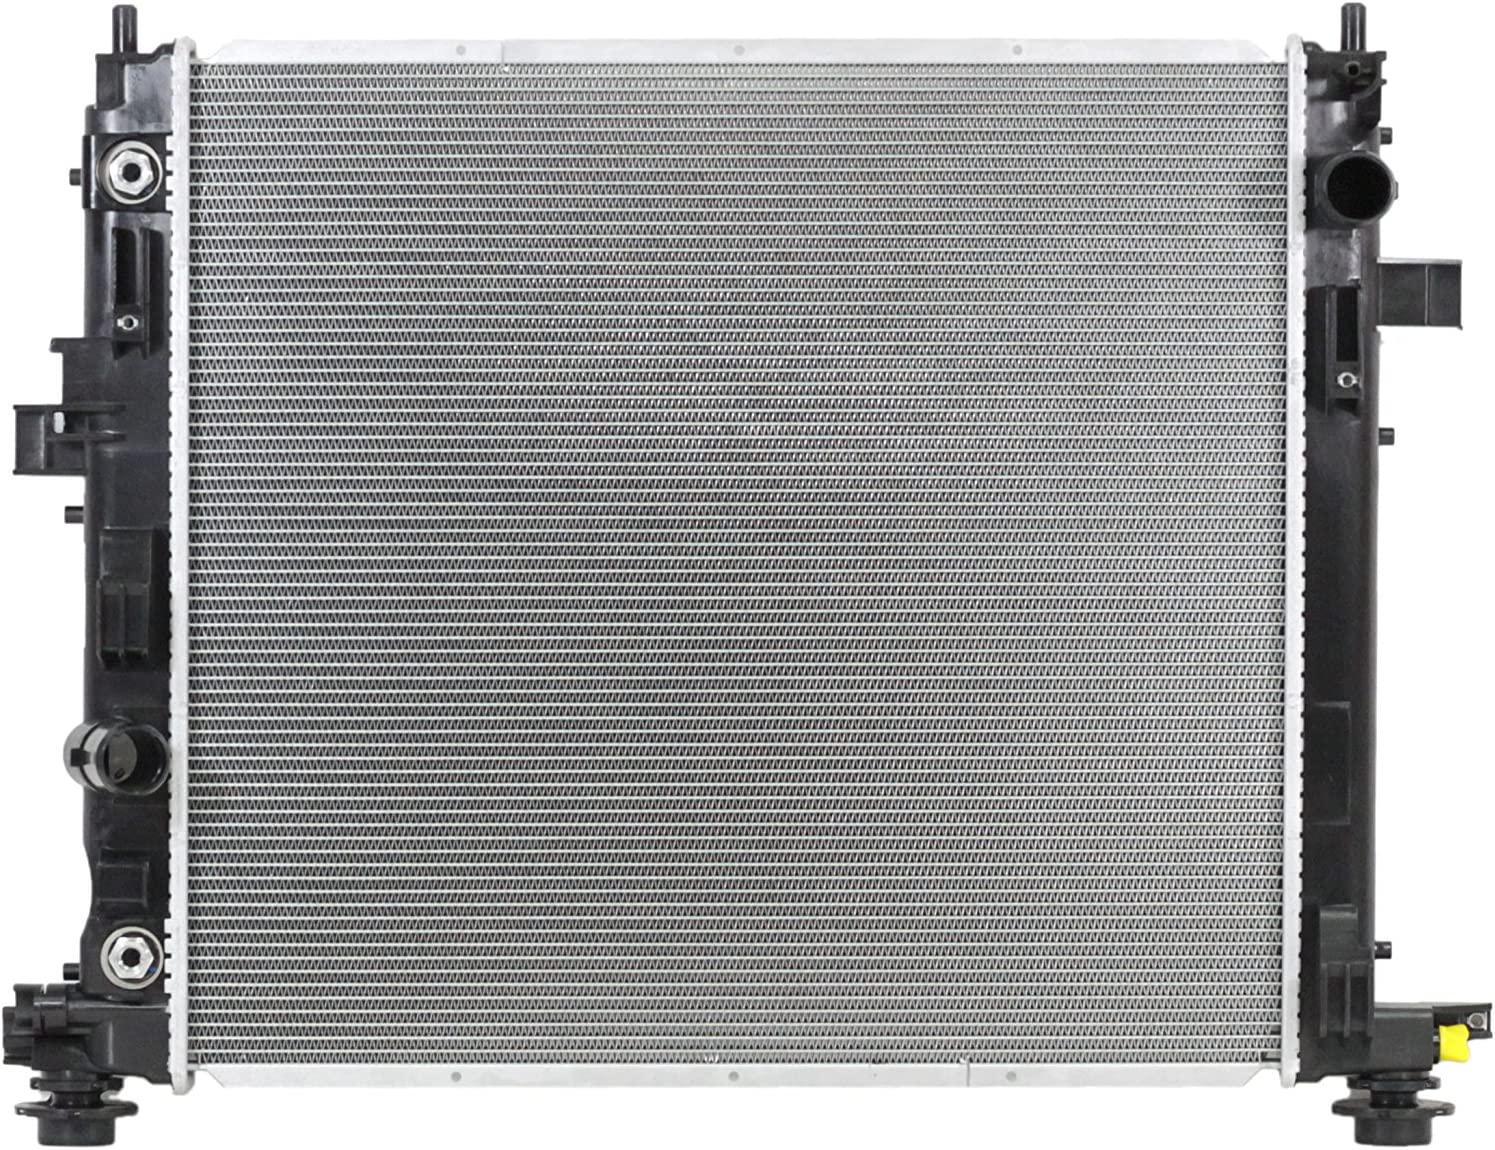 Radiator Be super welcome - Pacific Best Inc. Fit For Philadelphia Mall ATS Se Cadillac 13-15 13349